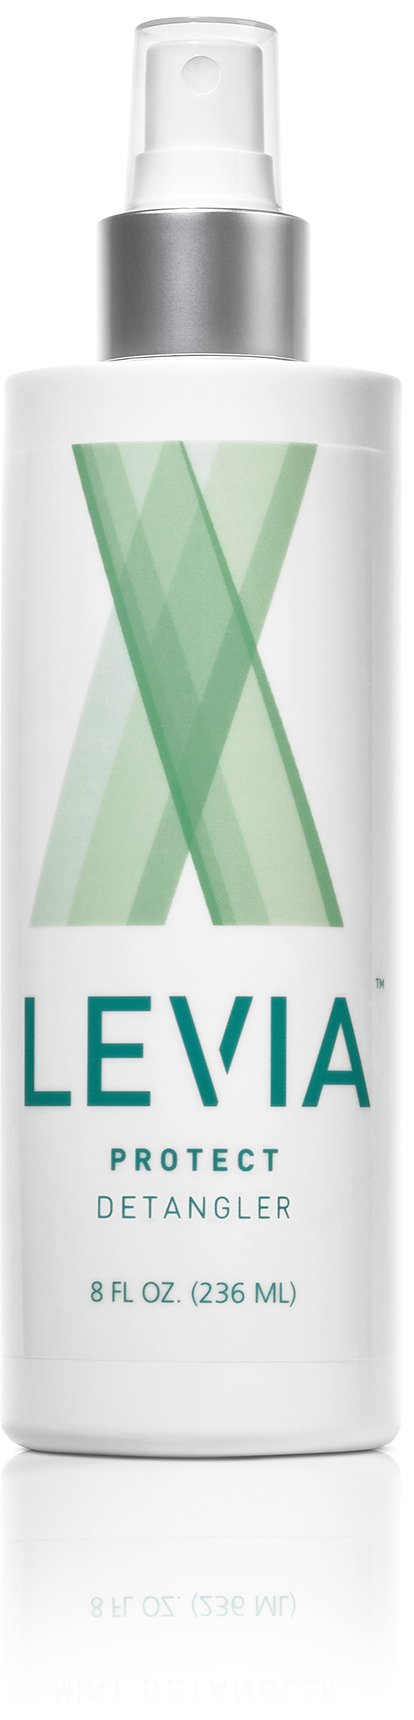 #1 Hair Detangler for Preventing Lice - LEVIA LICE - Natural Pesticide Free Products Infused with the Finest Essential Oils - Proven to Repel up to 100% of Lice - 8oz by LEVIA Health